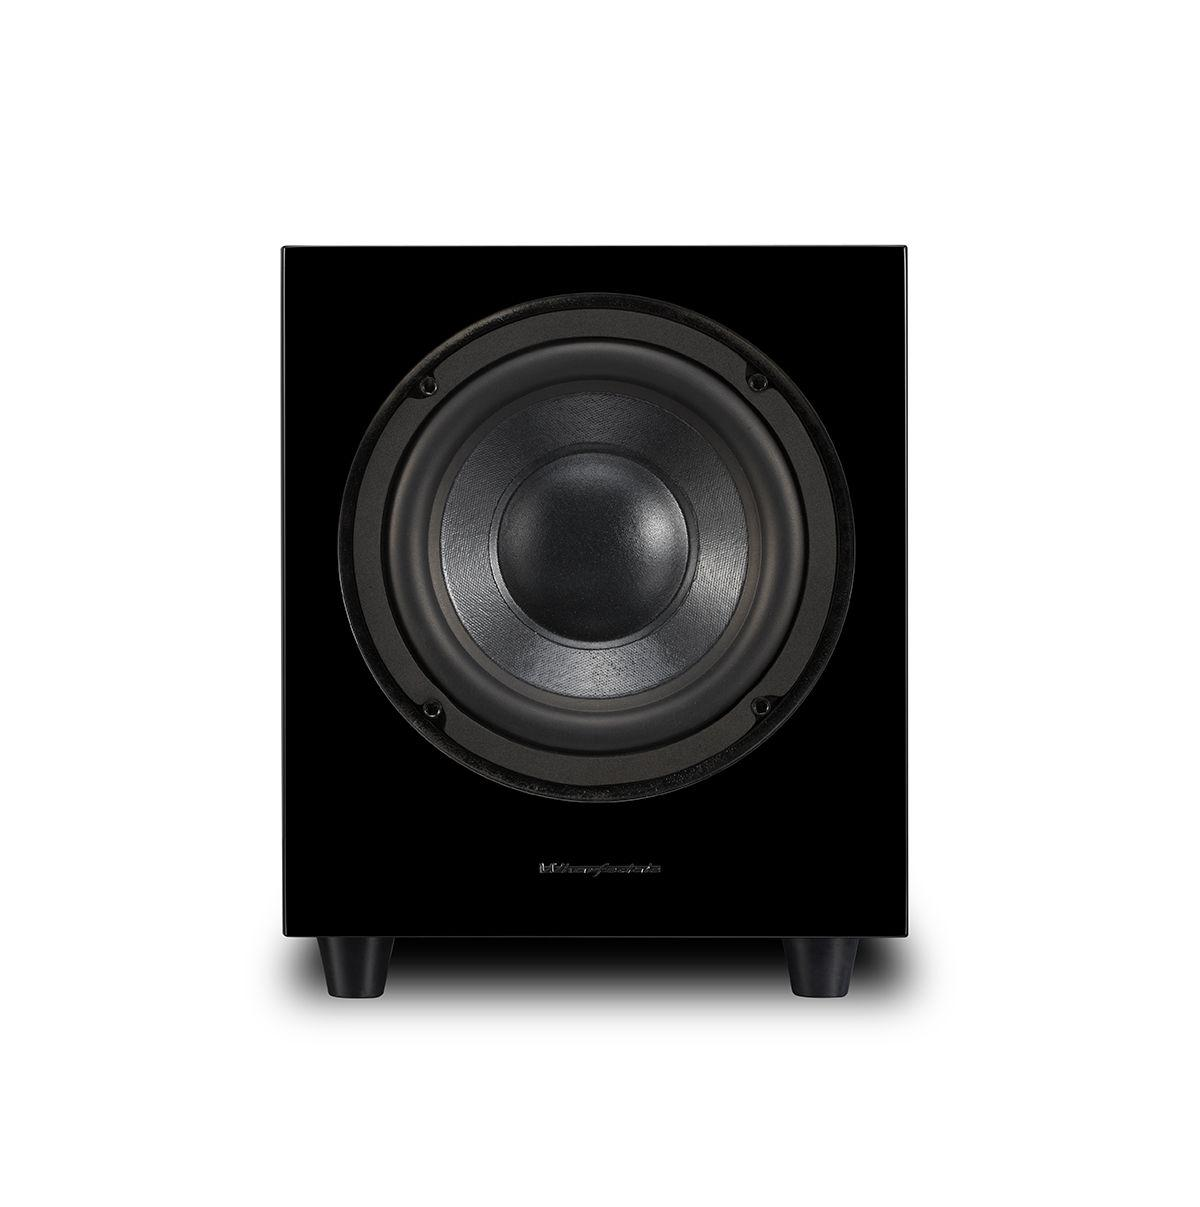 Subwoofer The Best Selling 5 Rankings